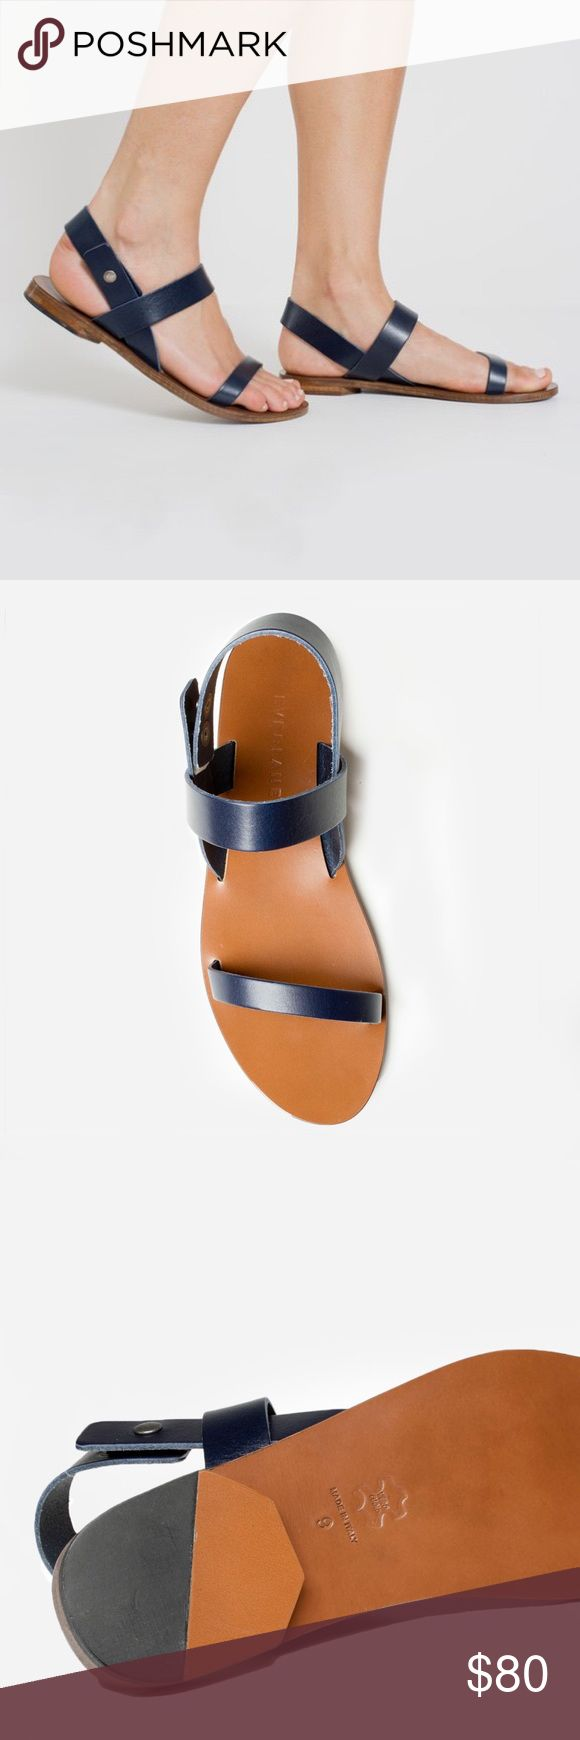 Italian leather sling-back sandal brand new Navy blue shoes!! beautiful sandal for spring and summer. no longer available to buy new online Everlane Shoes Sandals